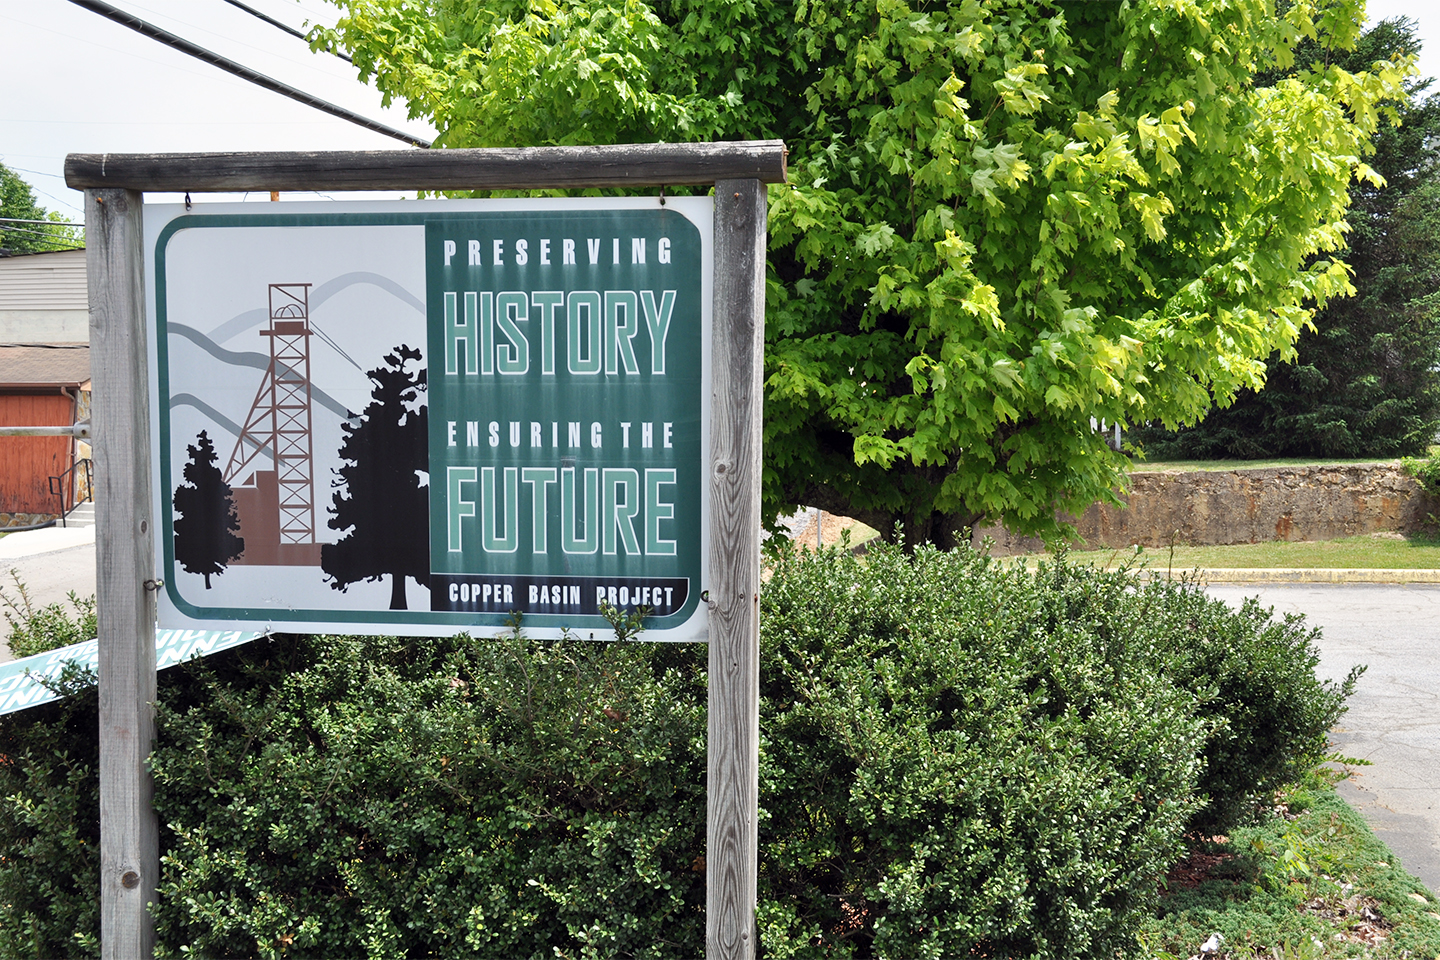 """A sign for the Copper Basin Project saying """"Preserving History, Ensuring the Future."""""""